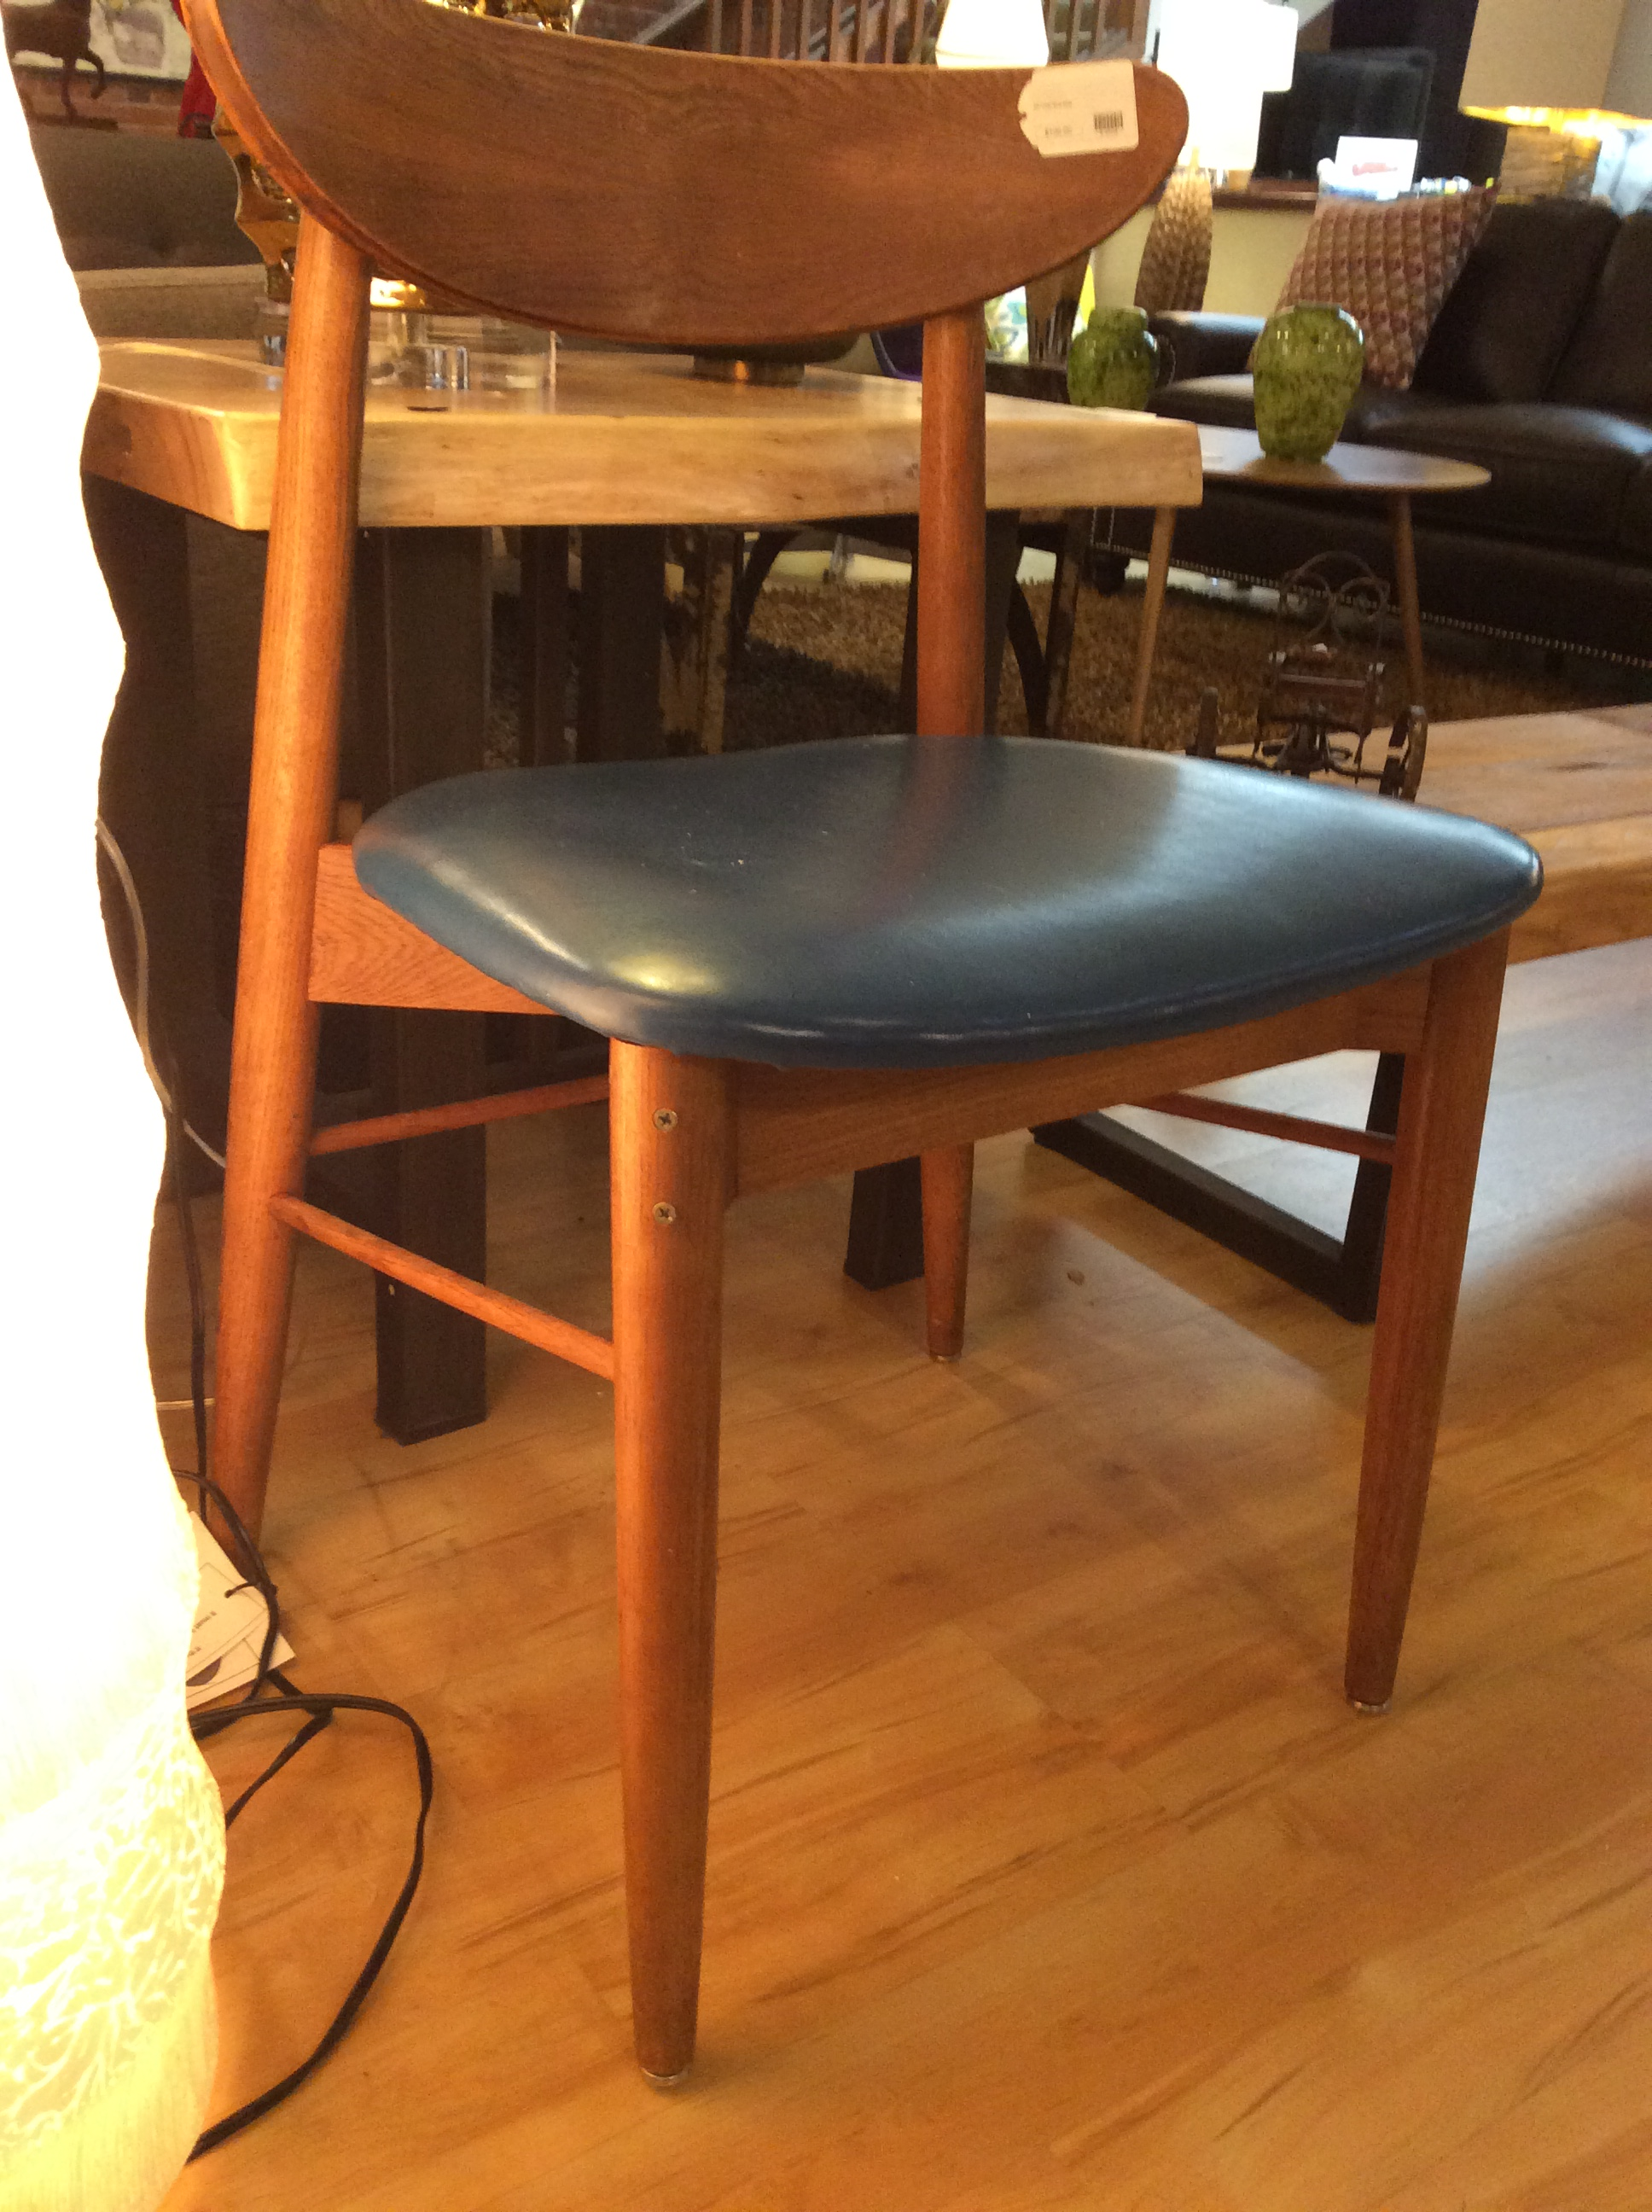 Furniture consignment seattle wa antique furniture for Furniture consignment